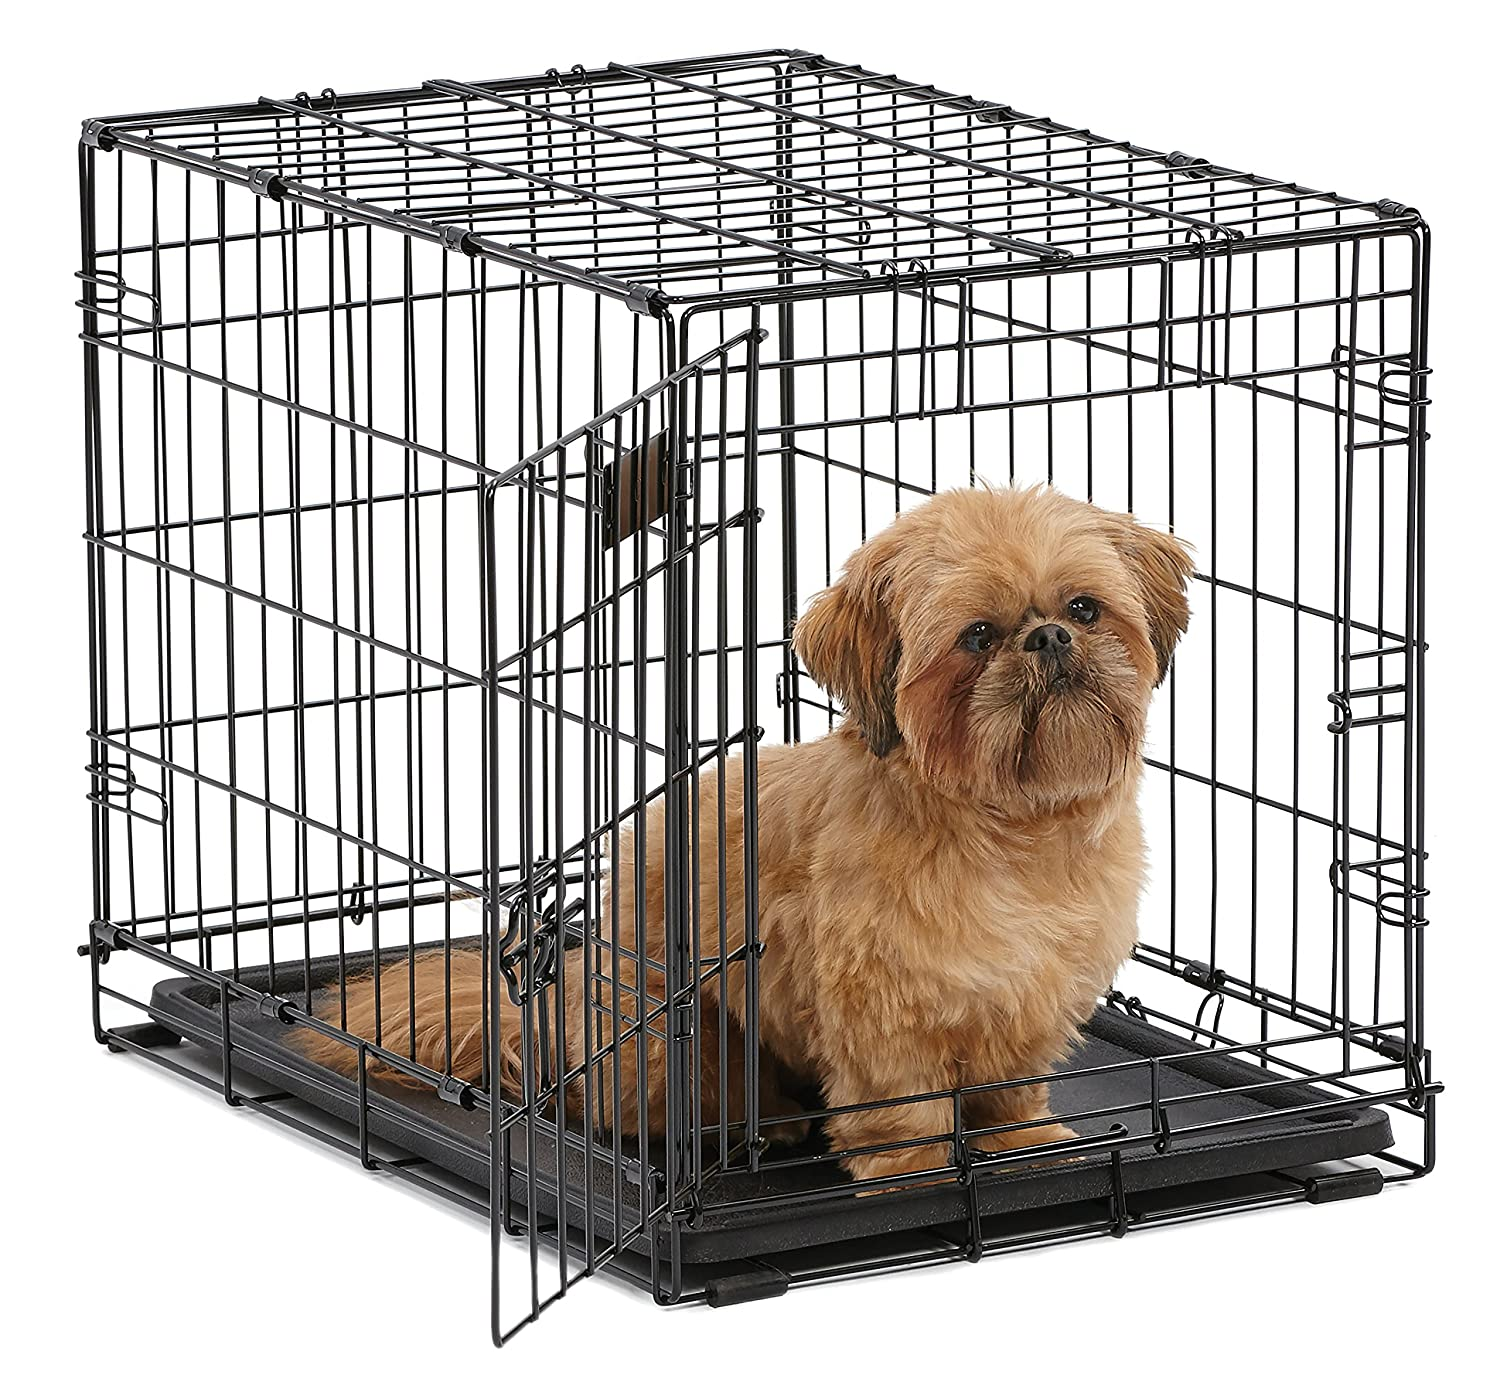 55% Off Dog Crate - Pay $22.49...